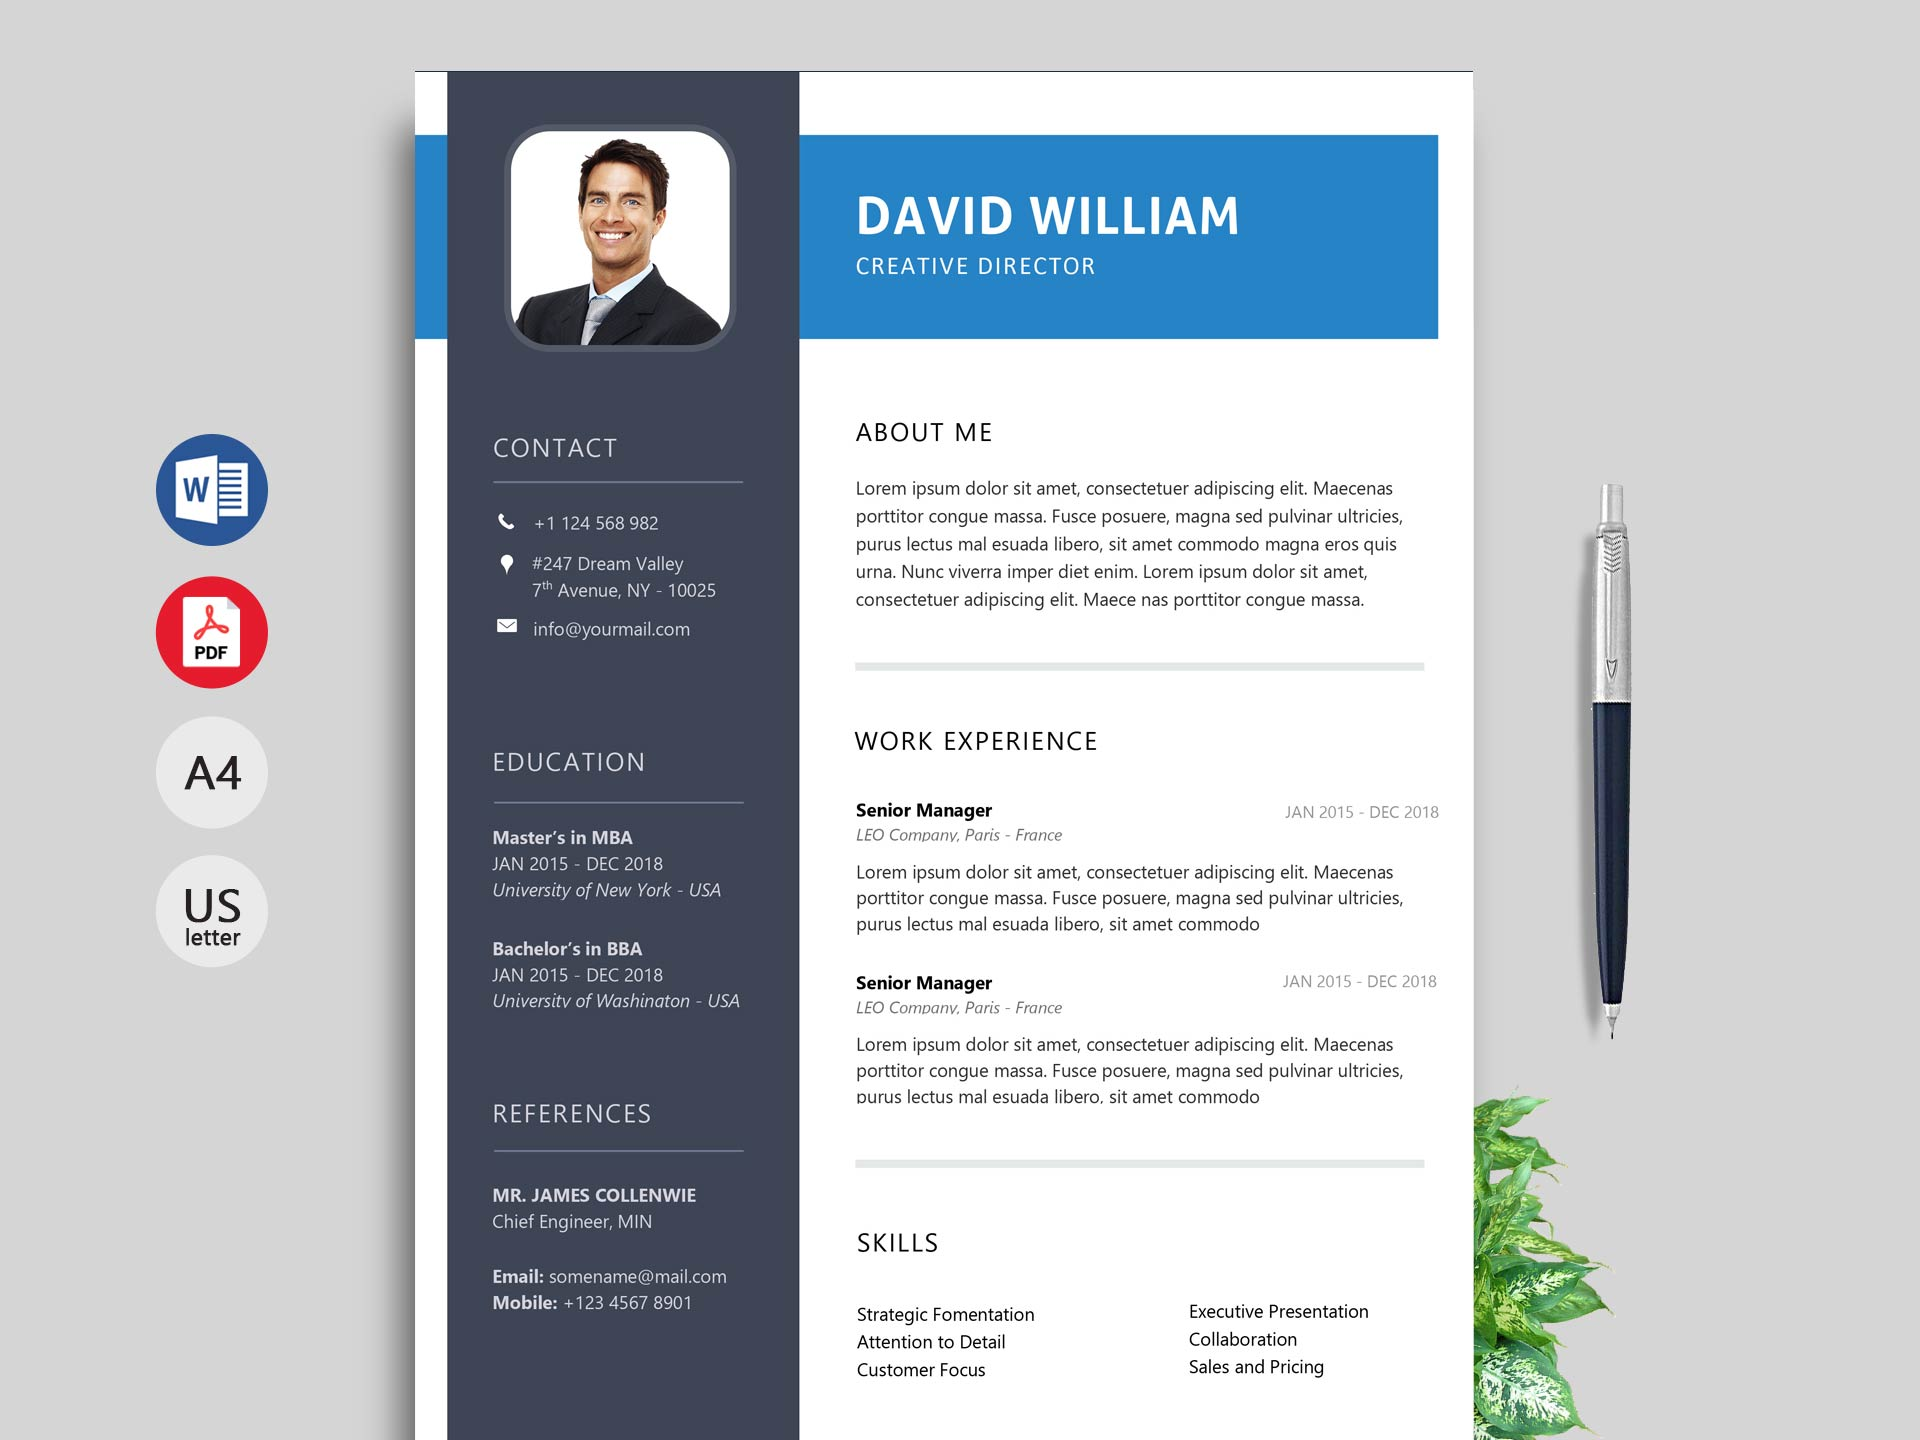 modern resume template ms word format resumekraft templates for microsoft with photo Resume Resume Templates For Microsoft Word With Photo